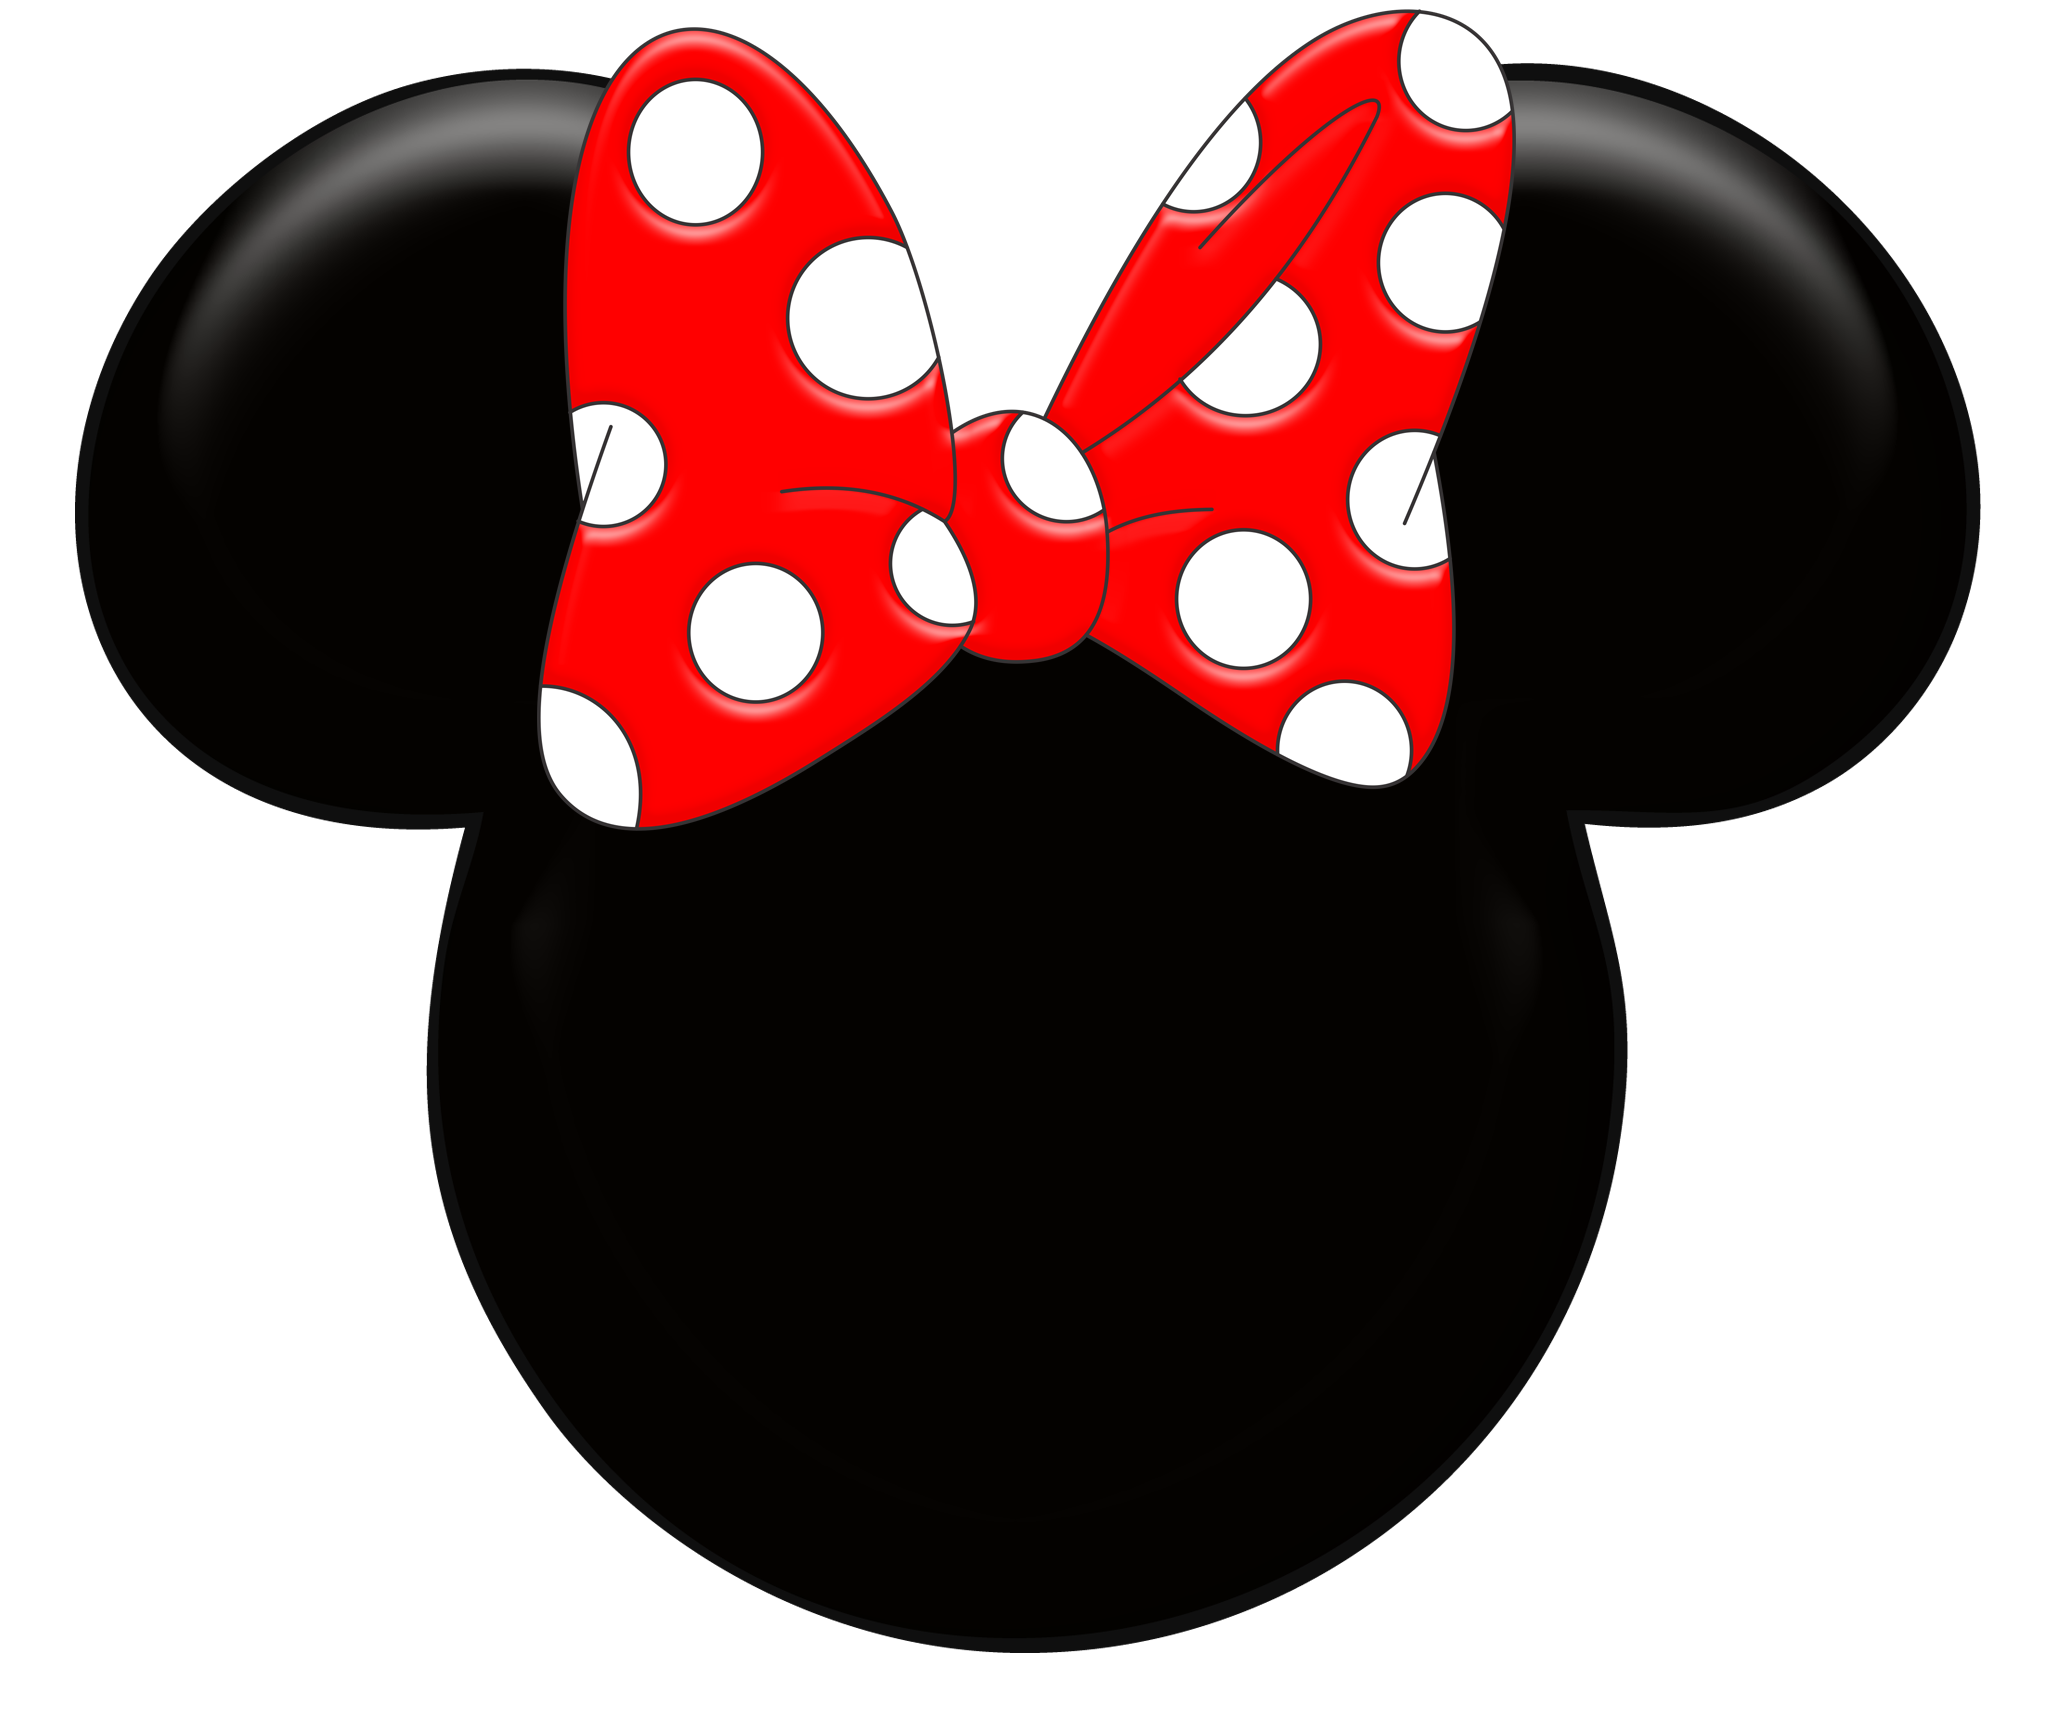 Red minnie wallpaper clipart. Mickey mouse head outline png graphic black and white